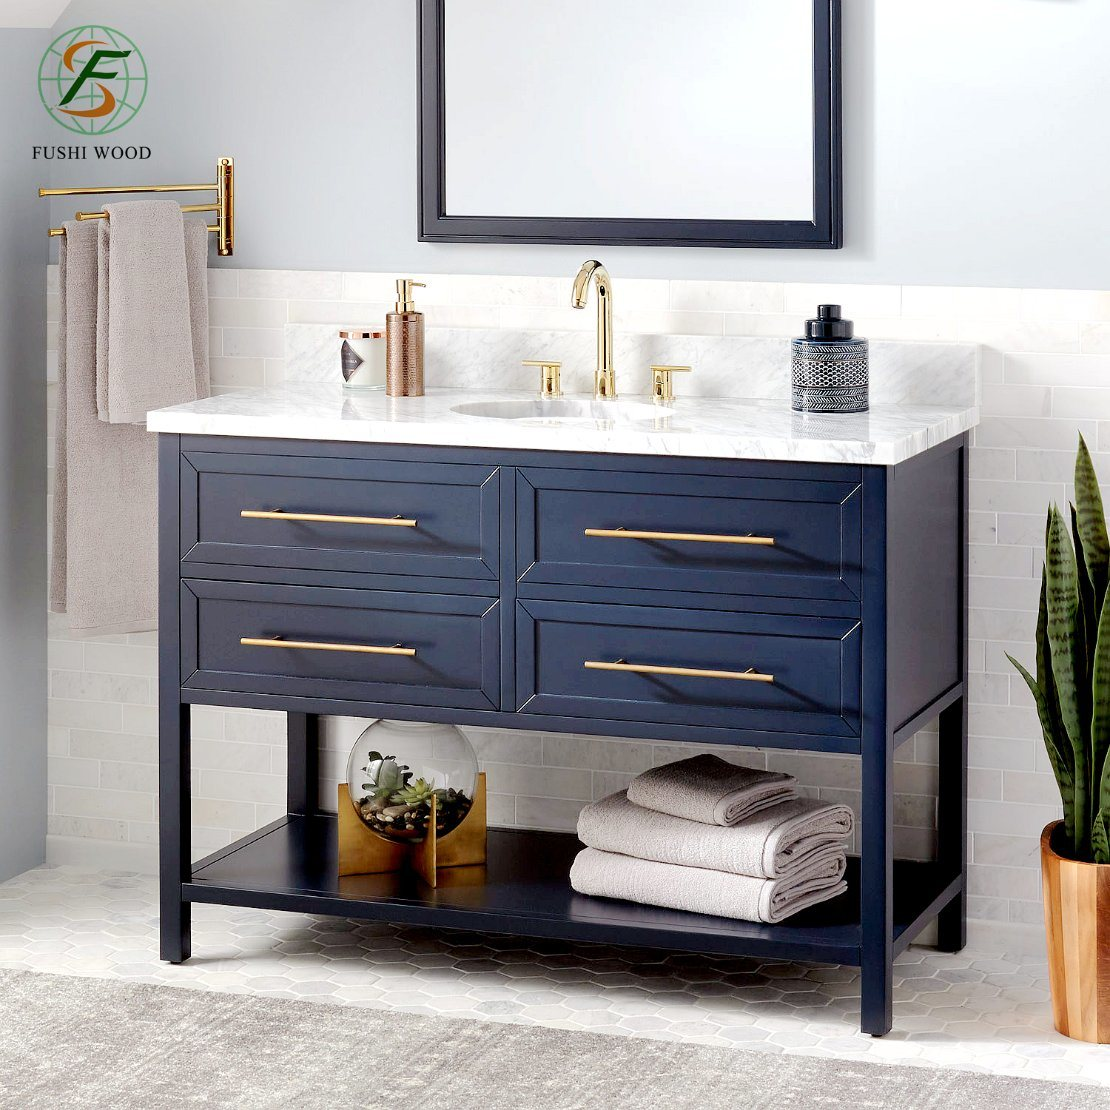 China 48 Inch Wide Solid Wood Lacquer Bathroom Cabinets For Large